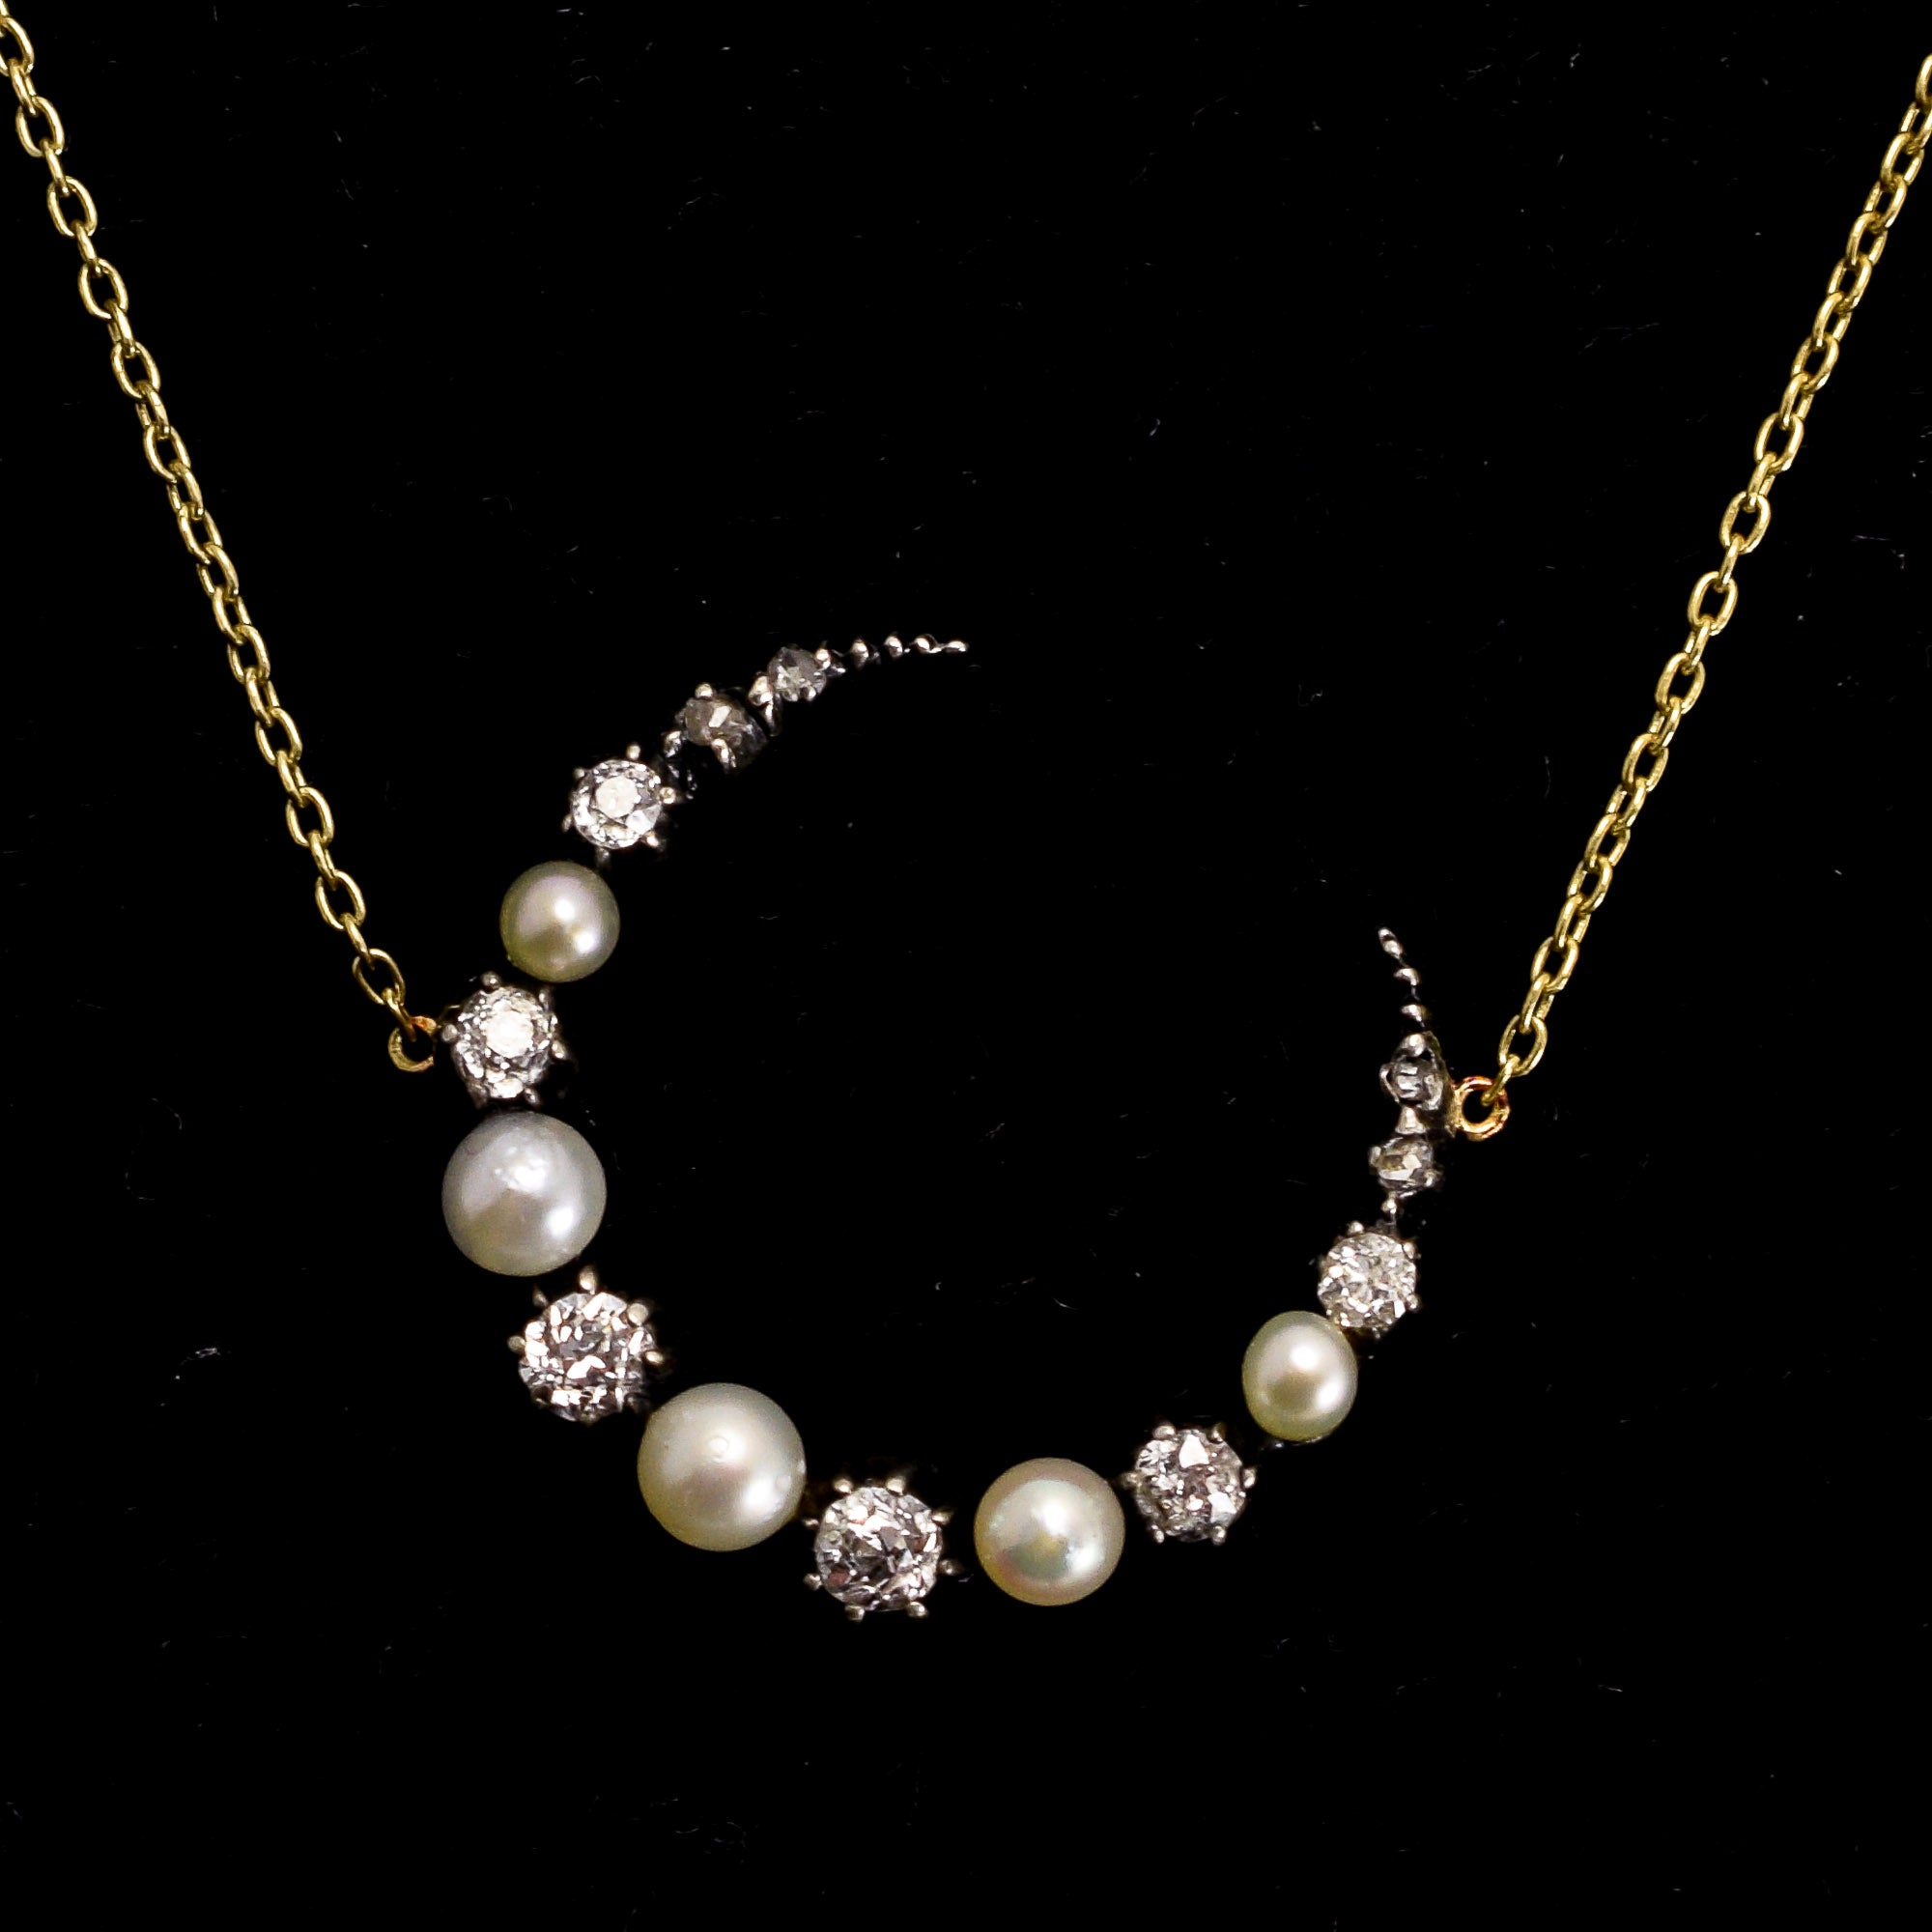 chanel necklace white evening vintage paved pearl with rhinestones brooch pendant jewelry faux